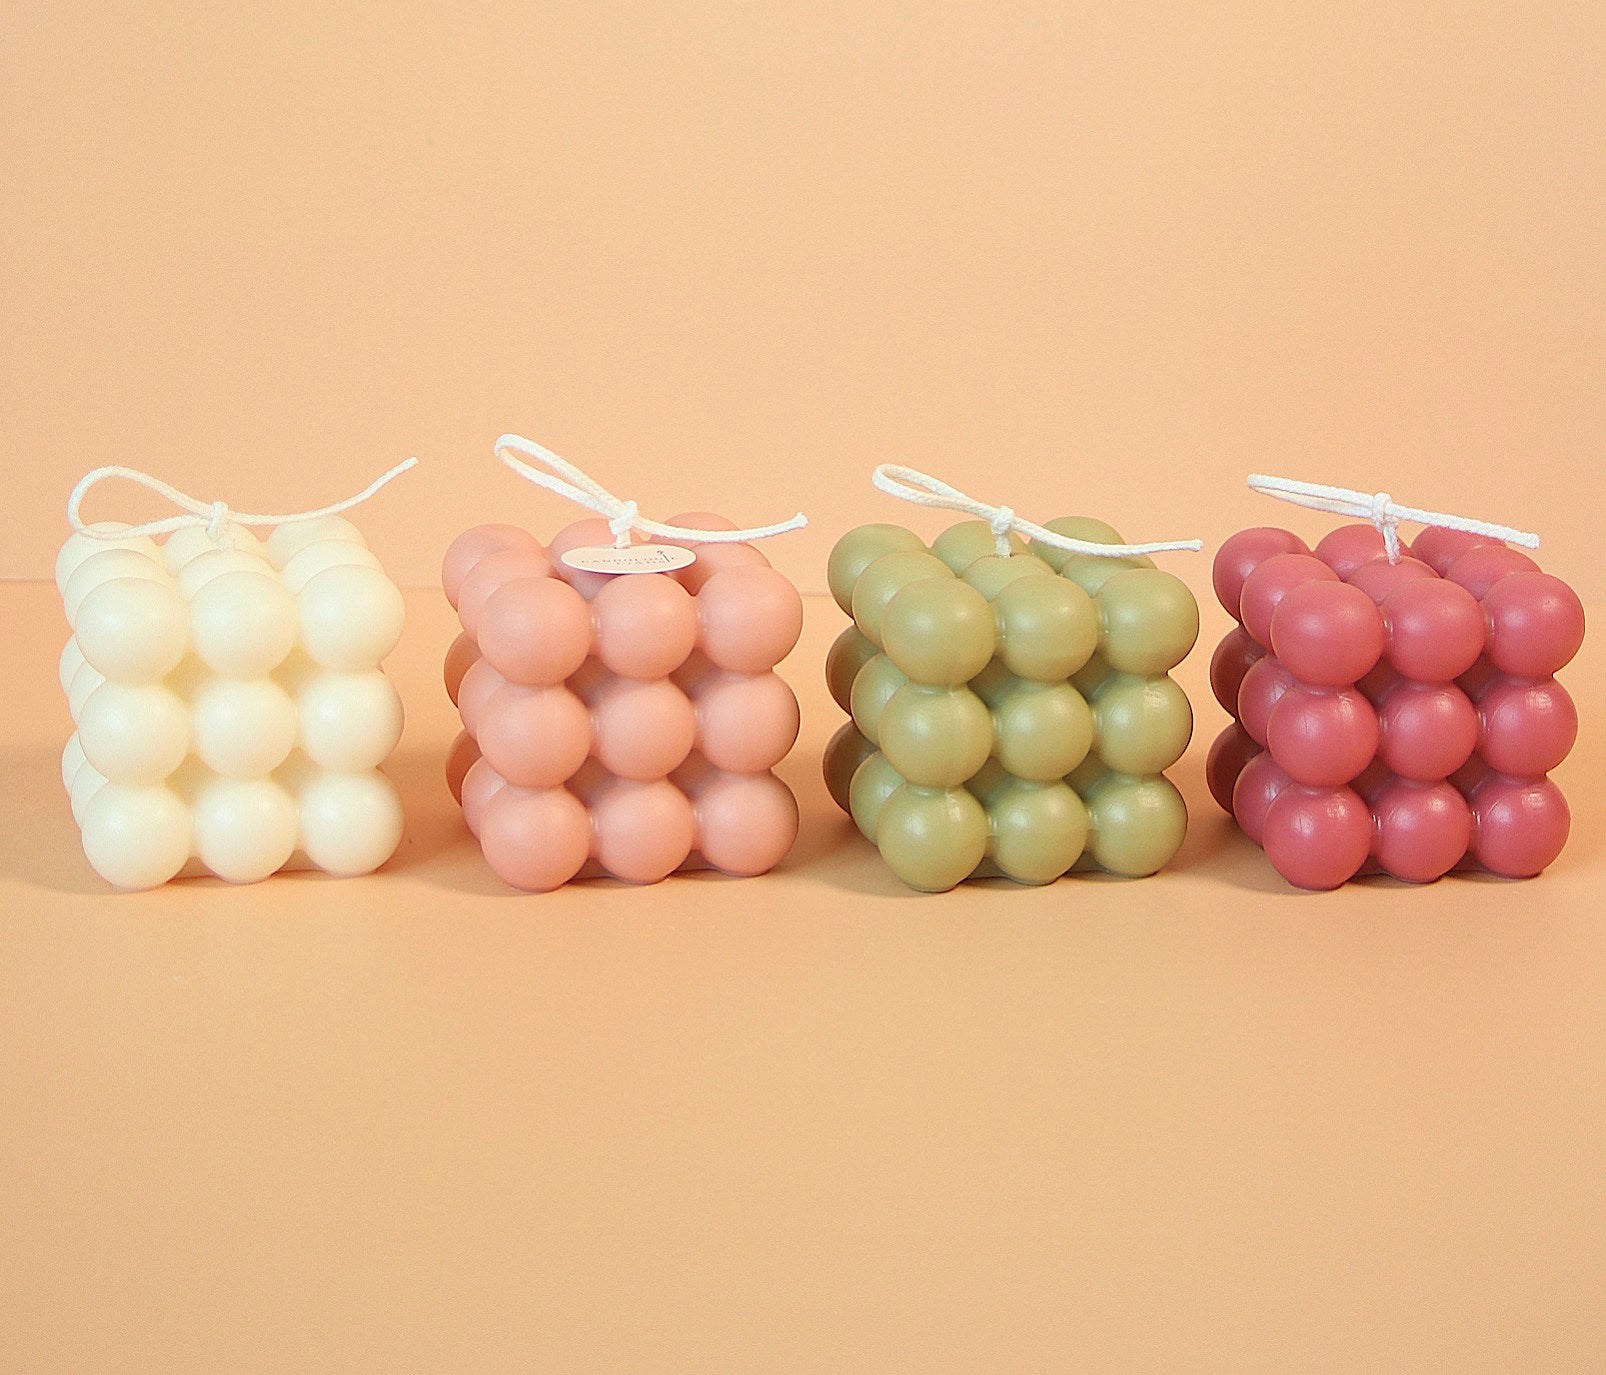 Four square-shaped candles in a row